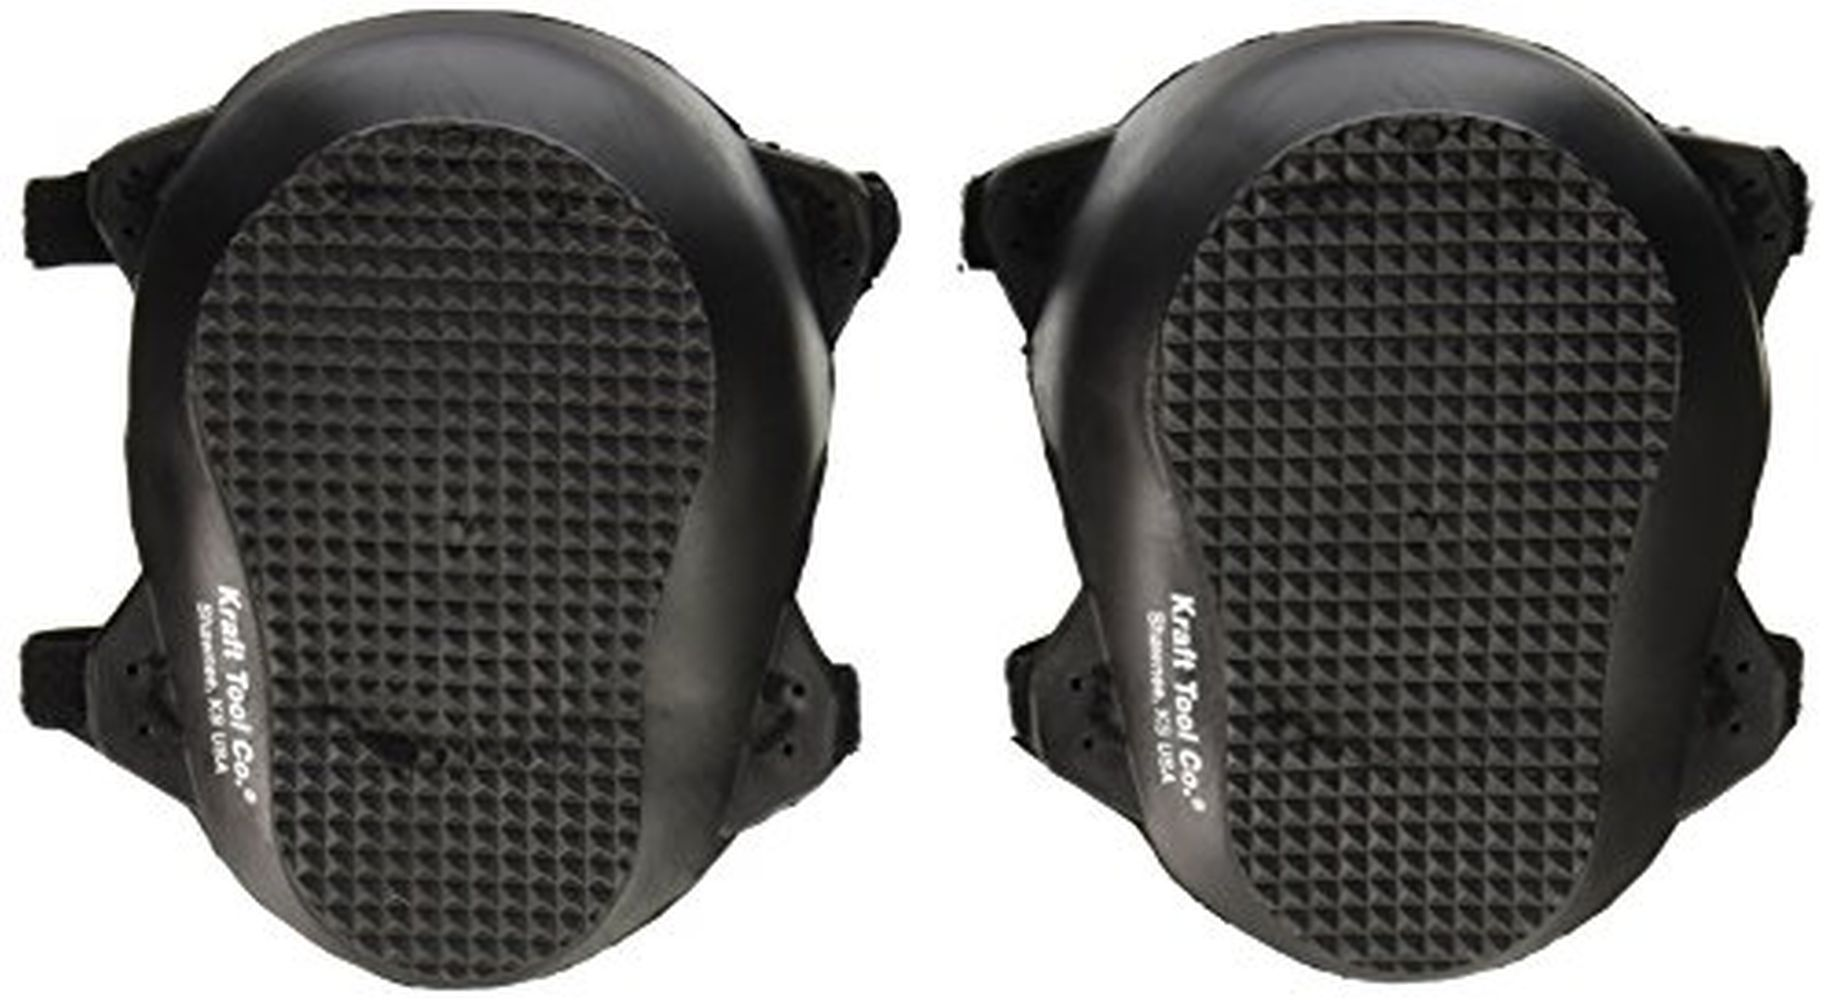 Kraft WL070 Rubber Knee Pads Made in the USA by Kraft Tool